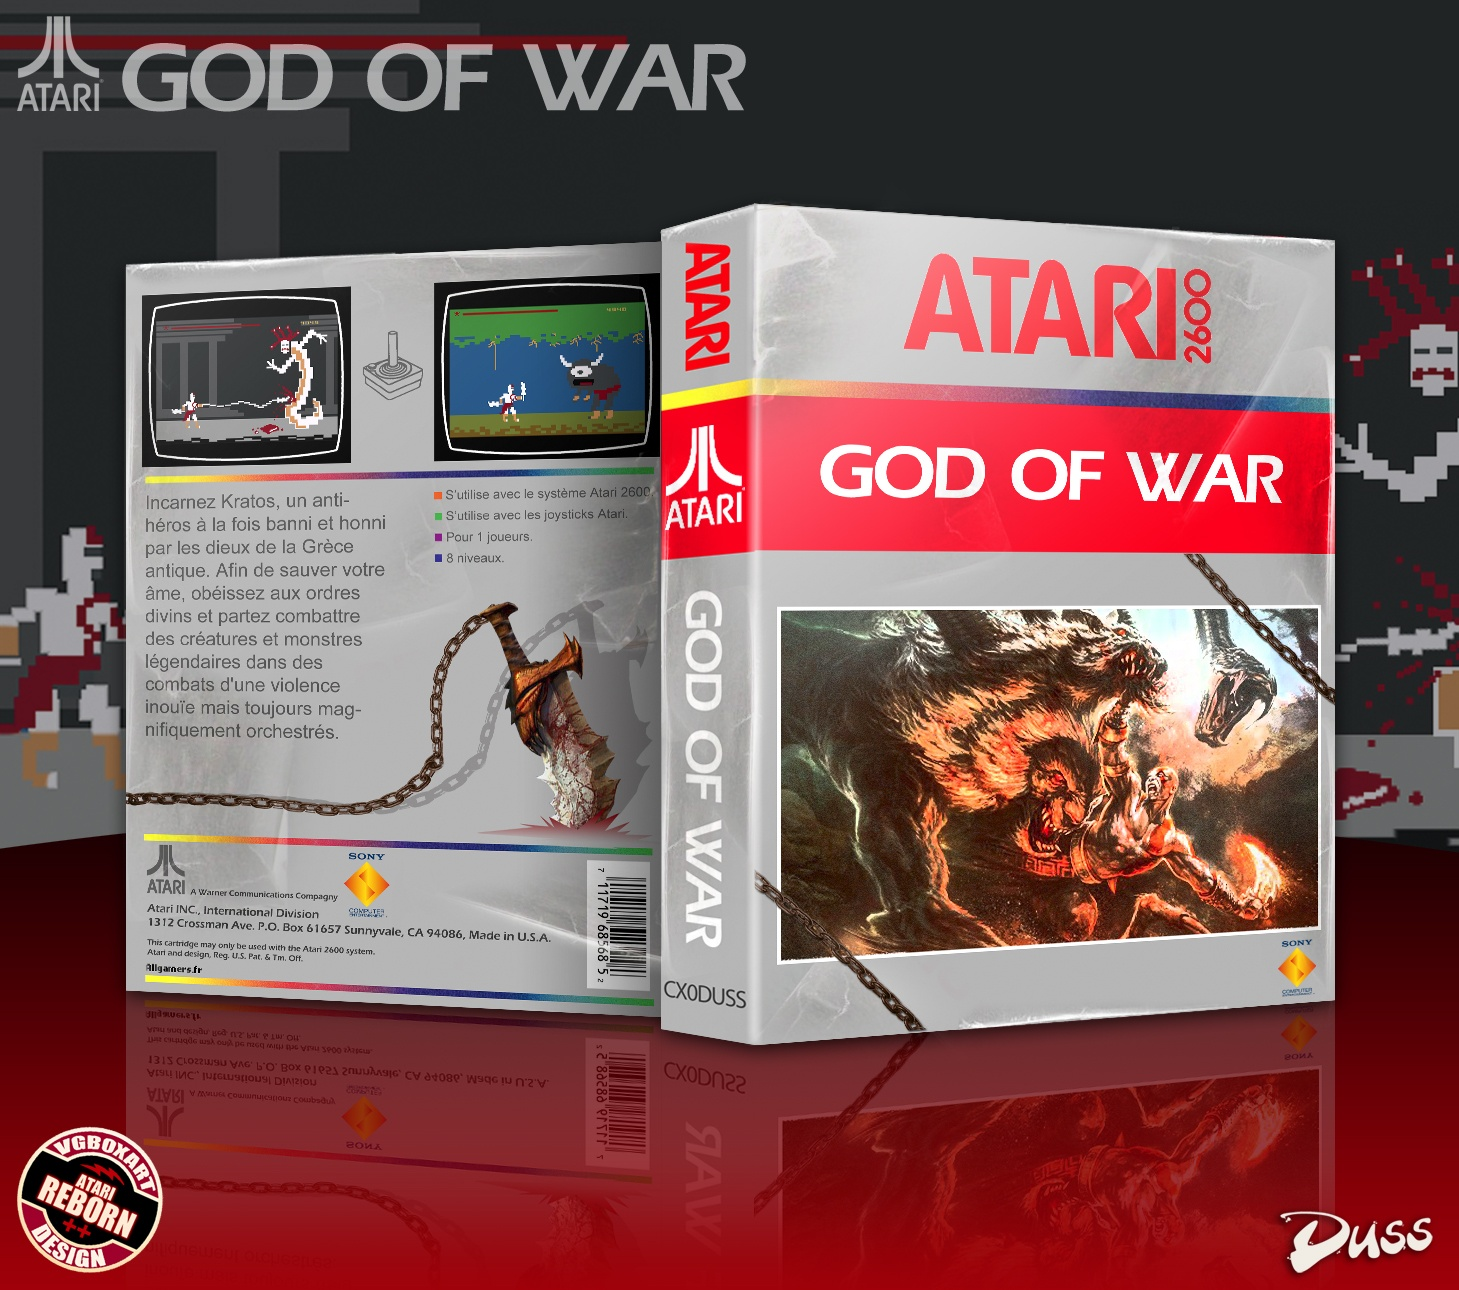 God of War box cover